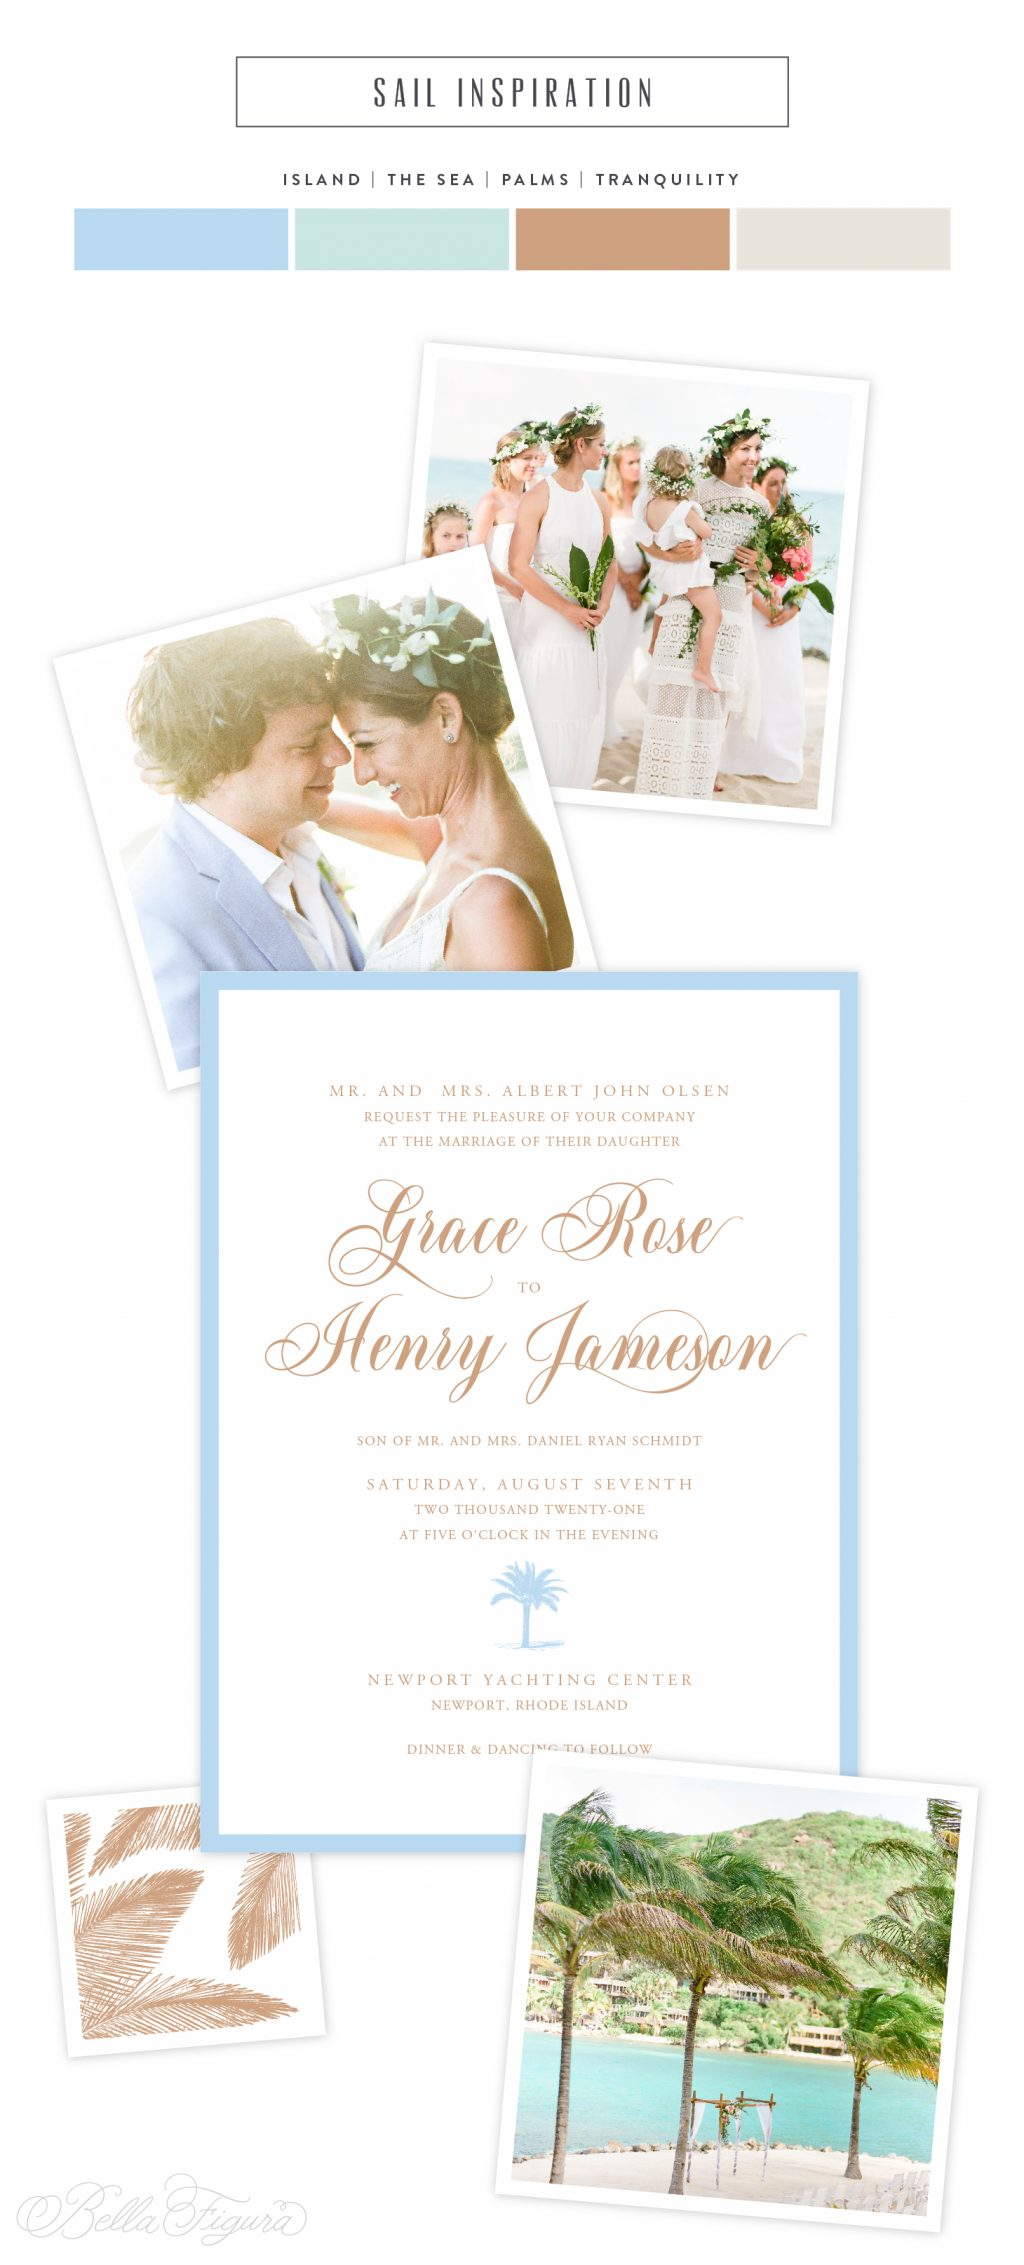 Sail reimagined: wedding invitations with a relaxed island vibe | Bella Figura